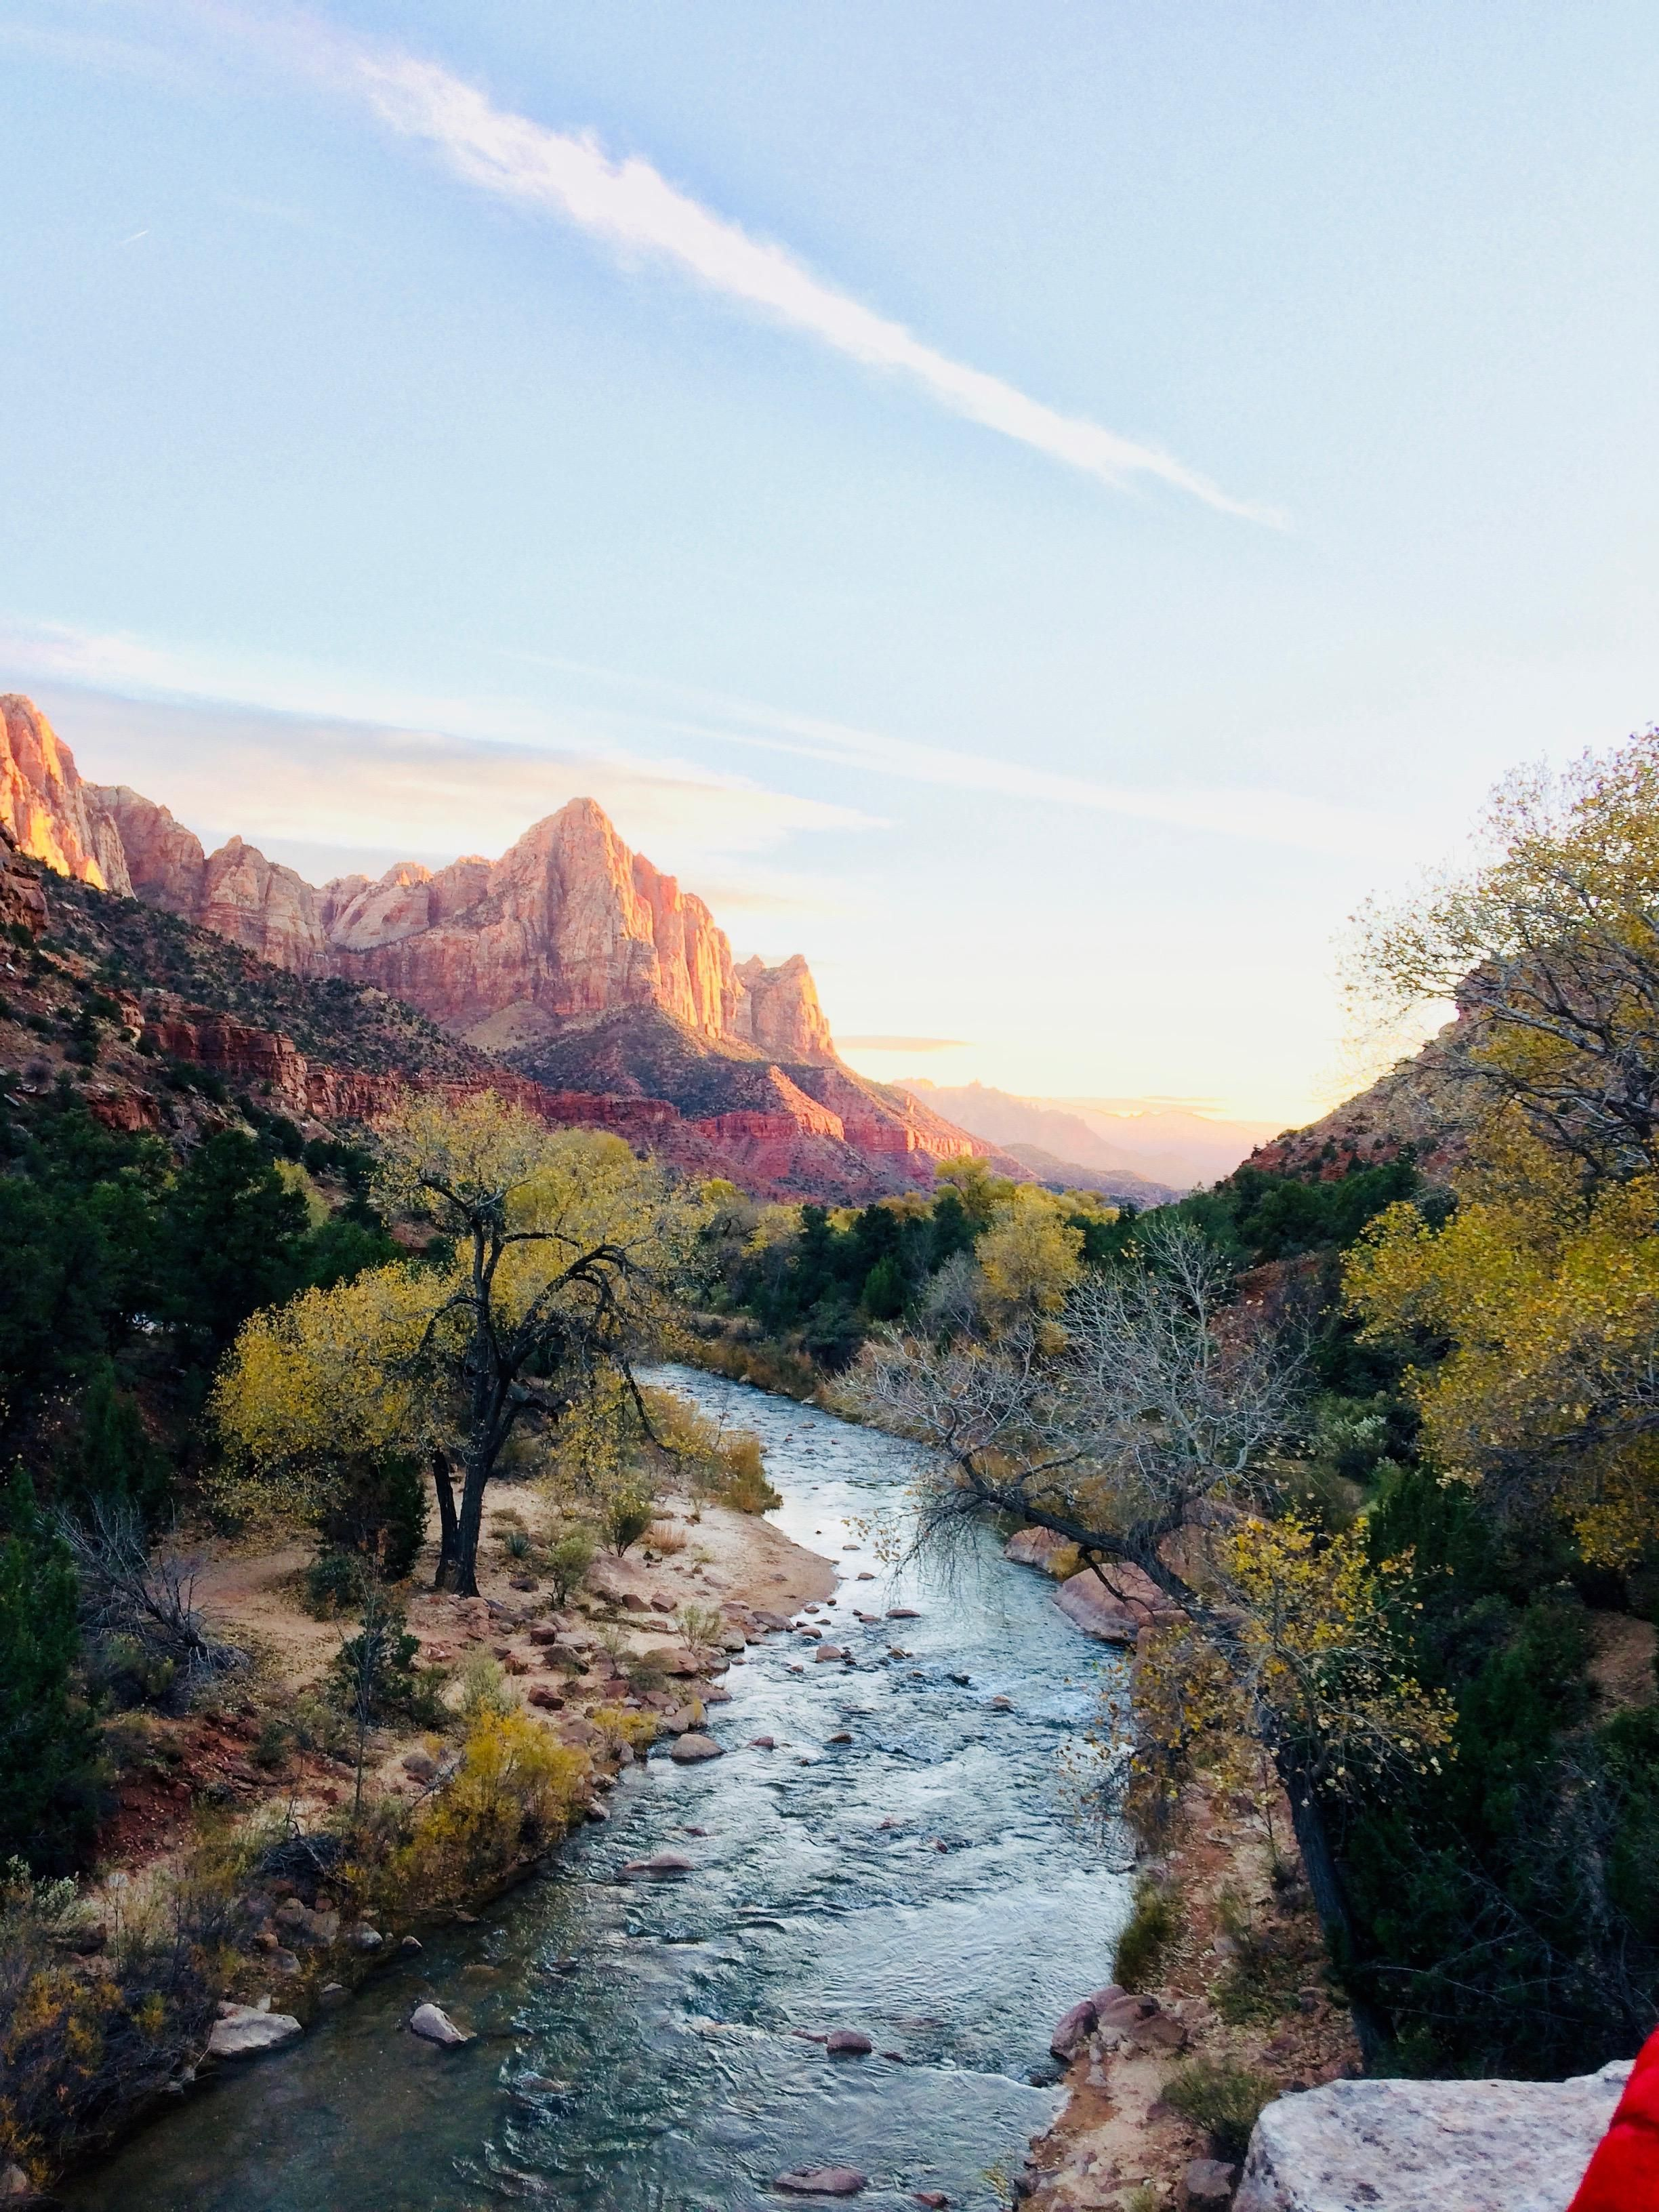 Pin By Chloe Stewart On Travelin In 2020 Zion National Park